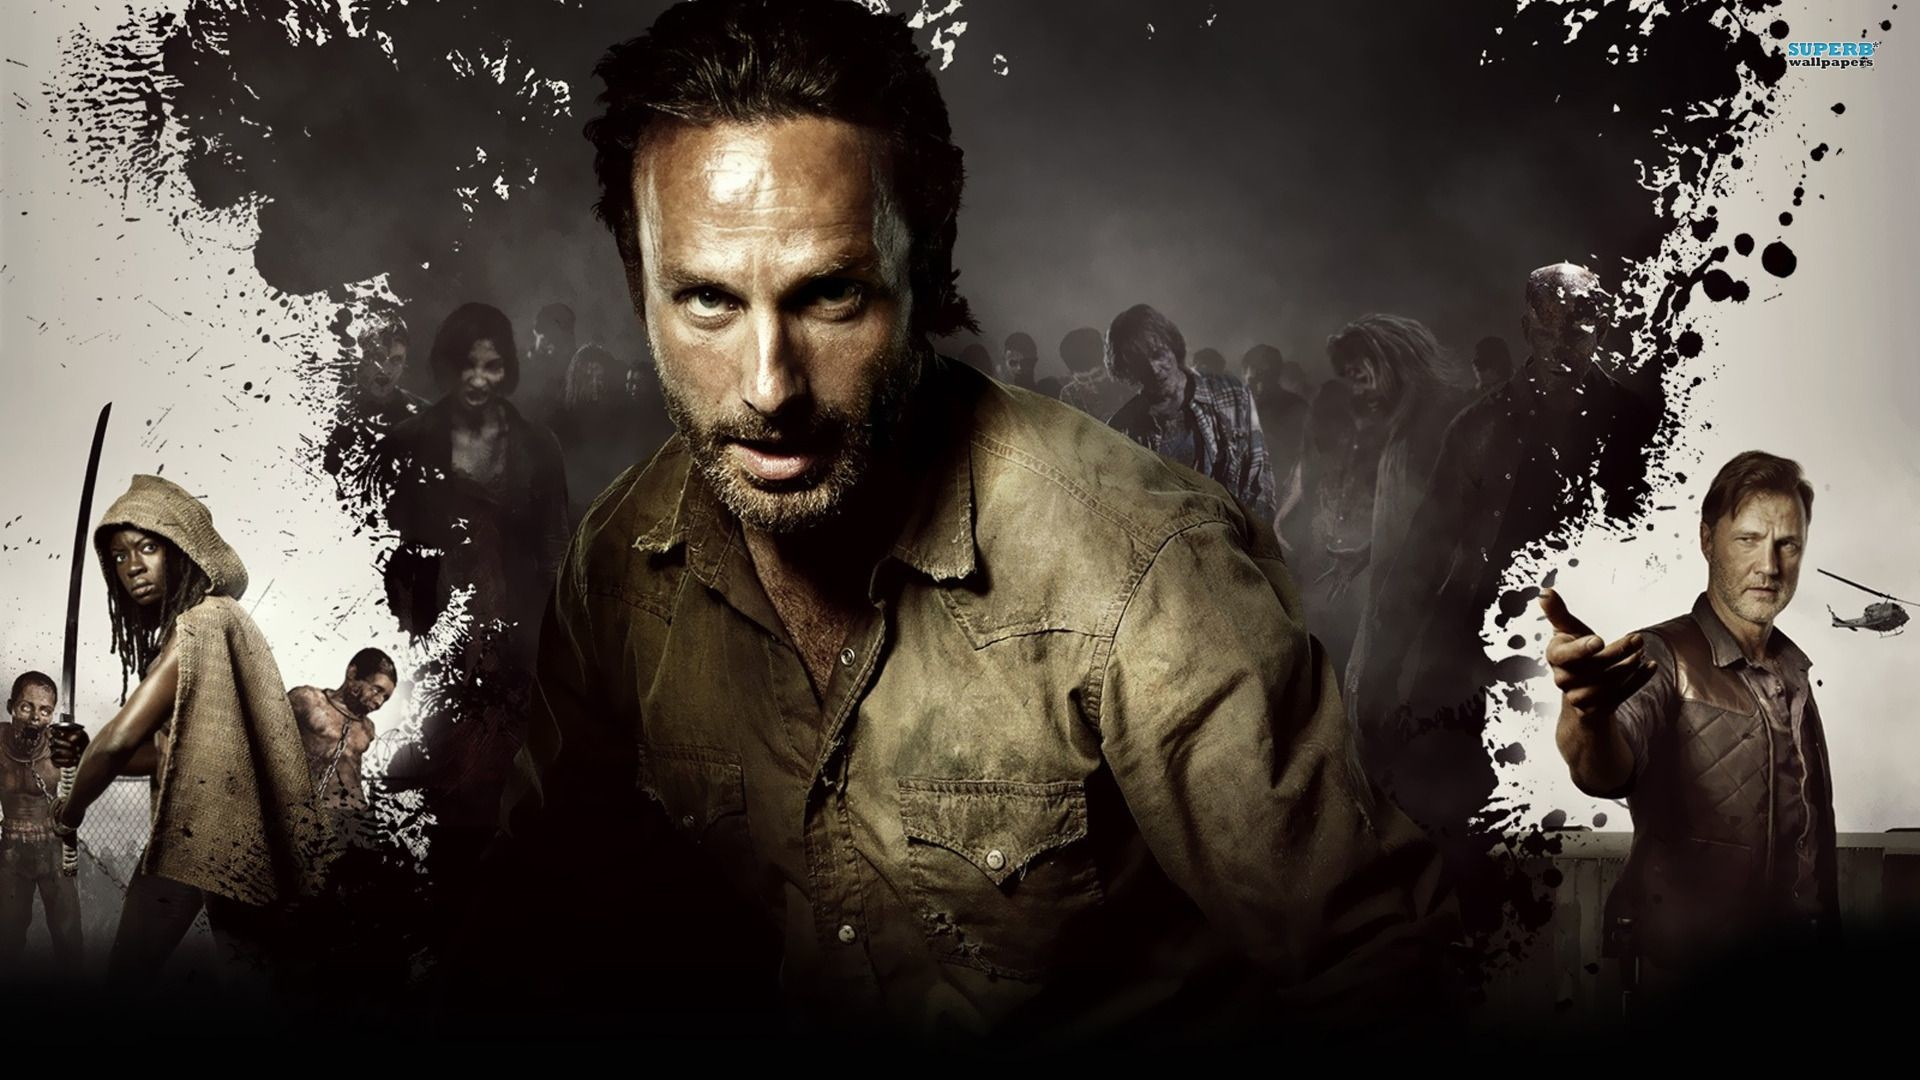 Walking Dead Wallpaper 1920x1080 Posted By Zoey Mercado